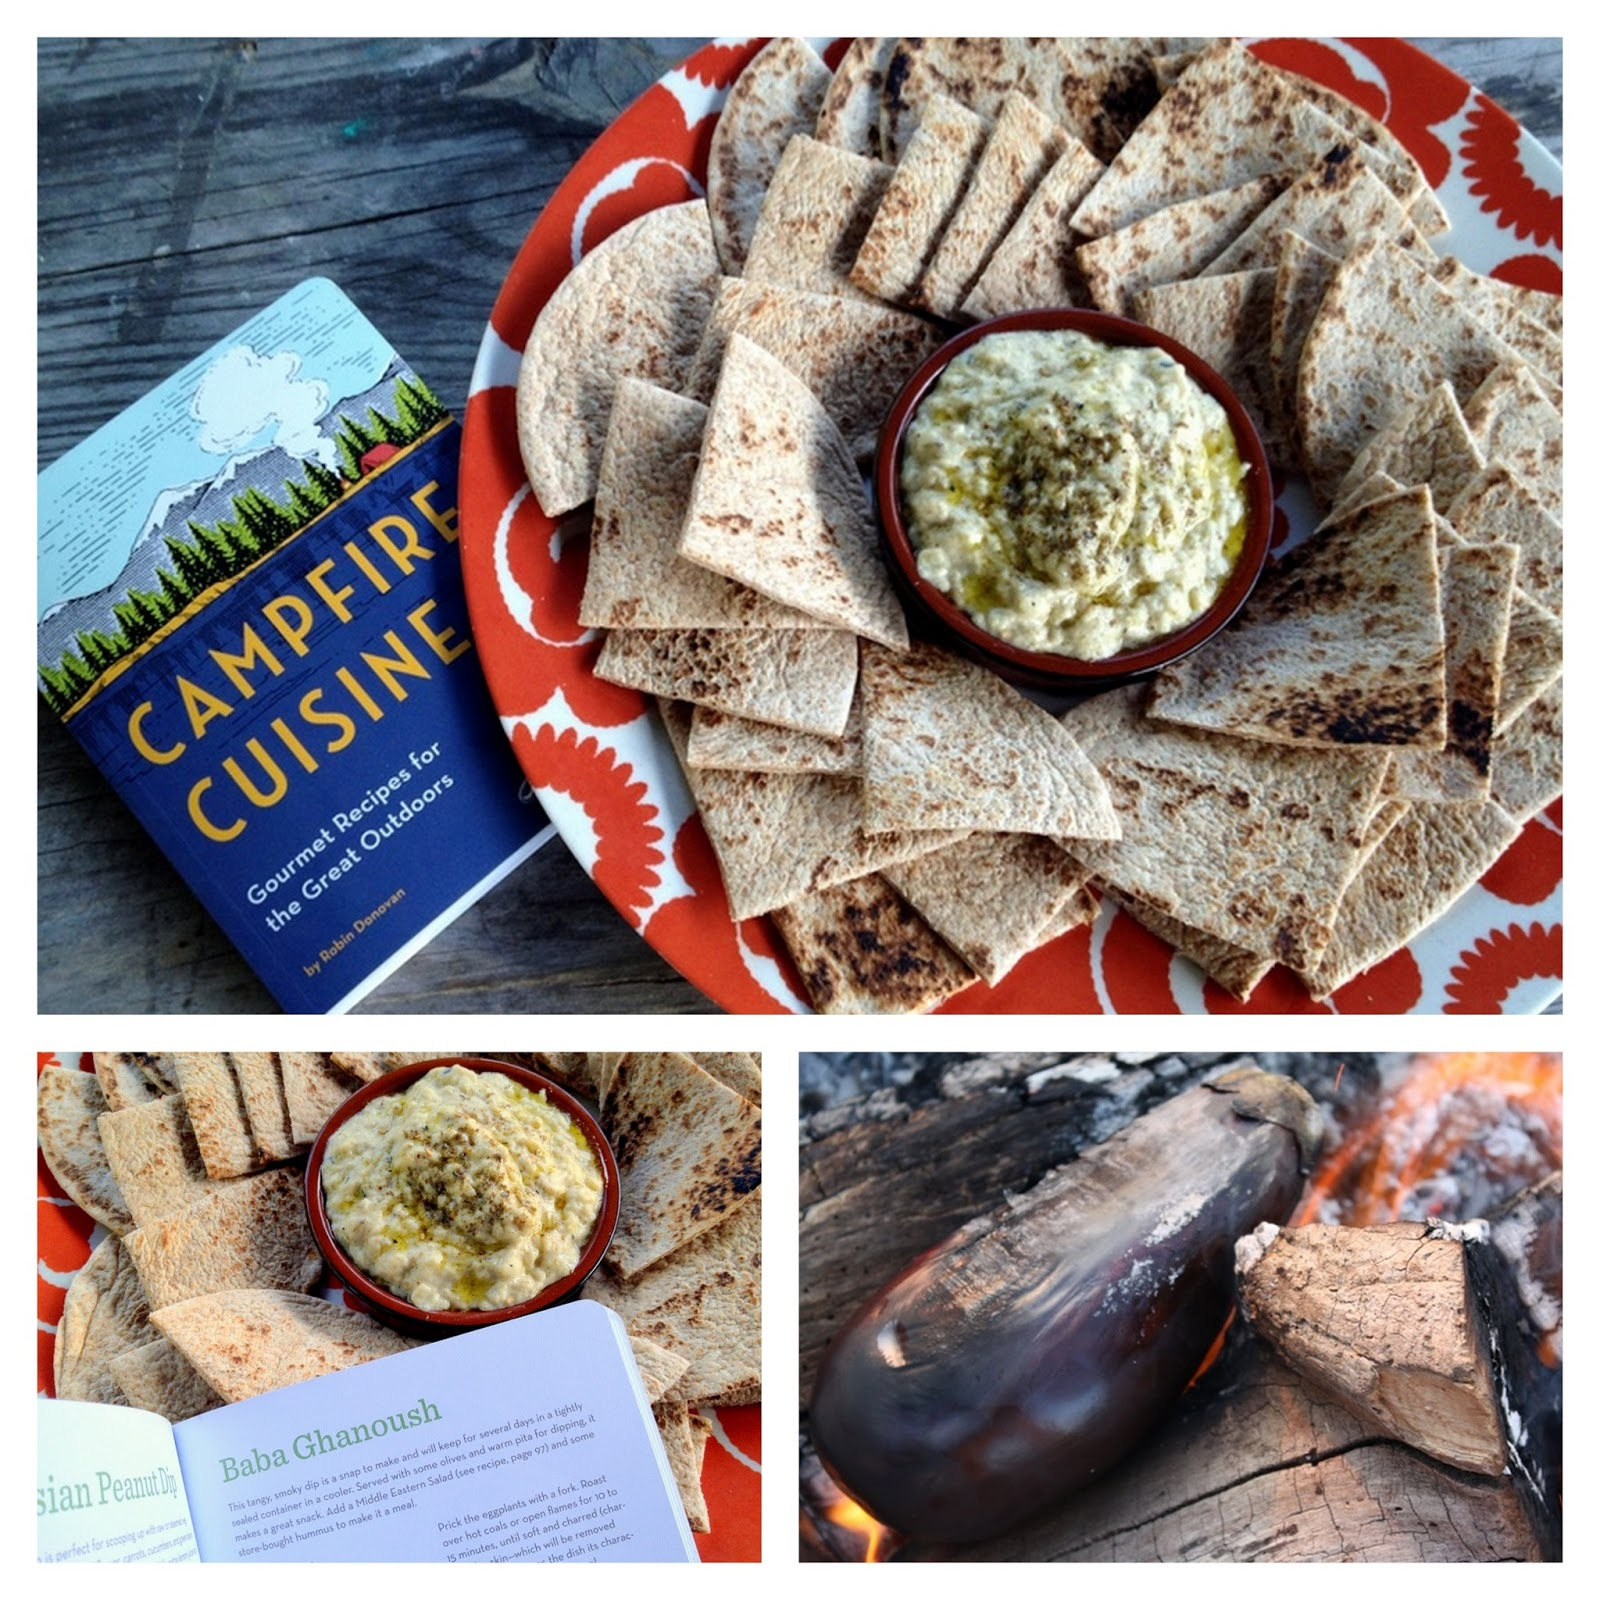 Kids Campfire Cooking And Recipes For Outdoor Cooking For: Lemony Couscous Salad And Other Recipes For Gourmet